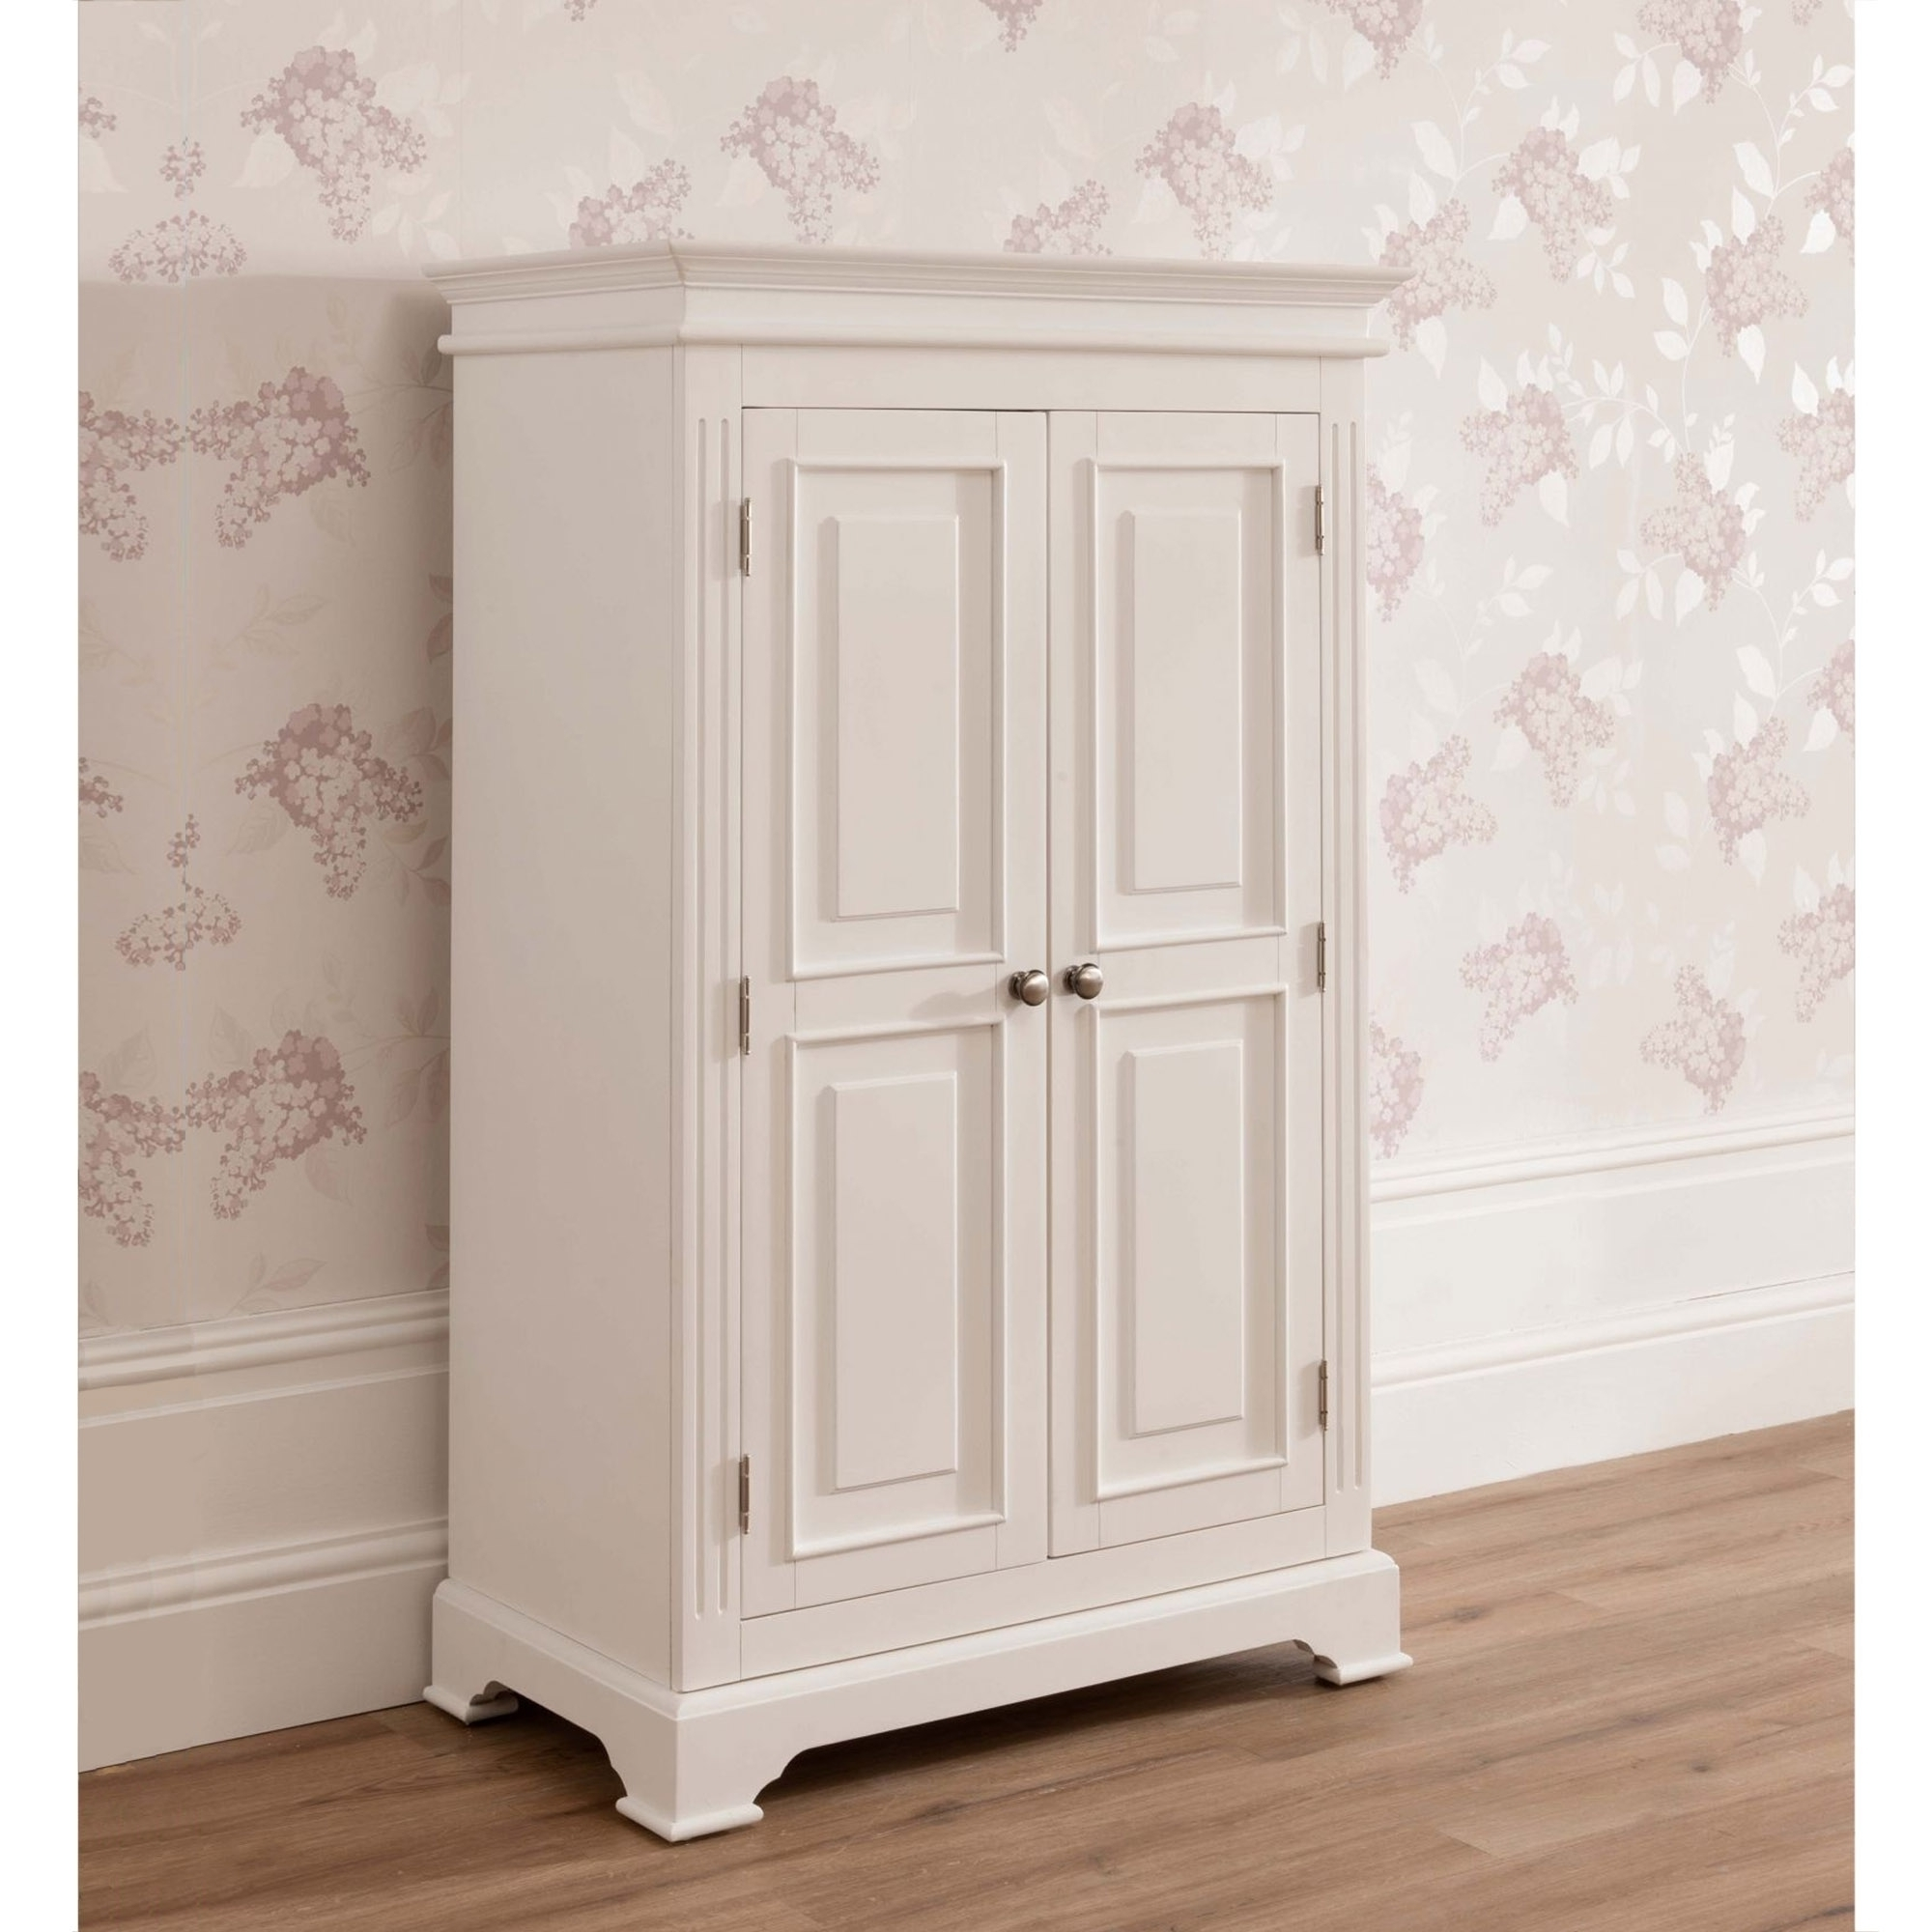 Latest French Shabby Chic Wardrobes In Sophia Kids Shabby Chic Wardrobe Works Wonderful Alongside Our (View 9 of 15)